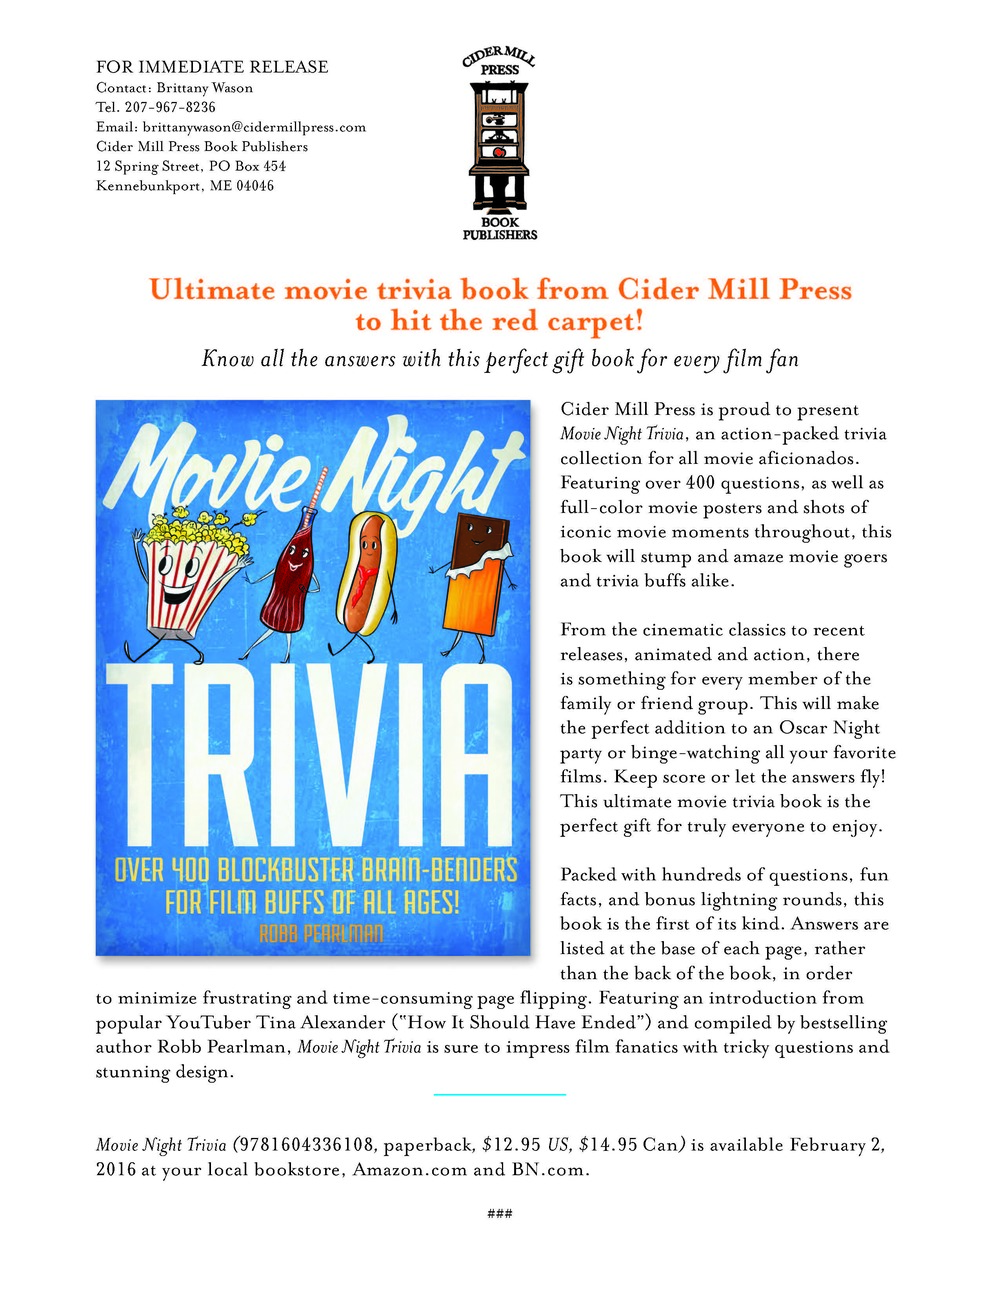 MovieNightTrivia_PressRelease.jpg